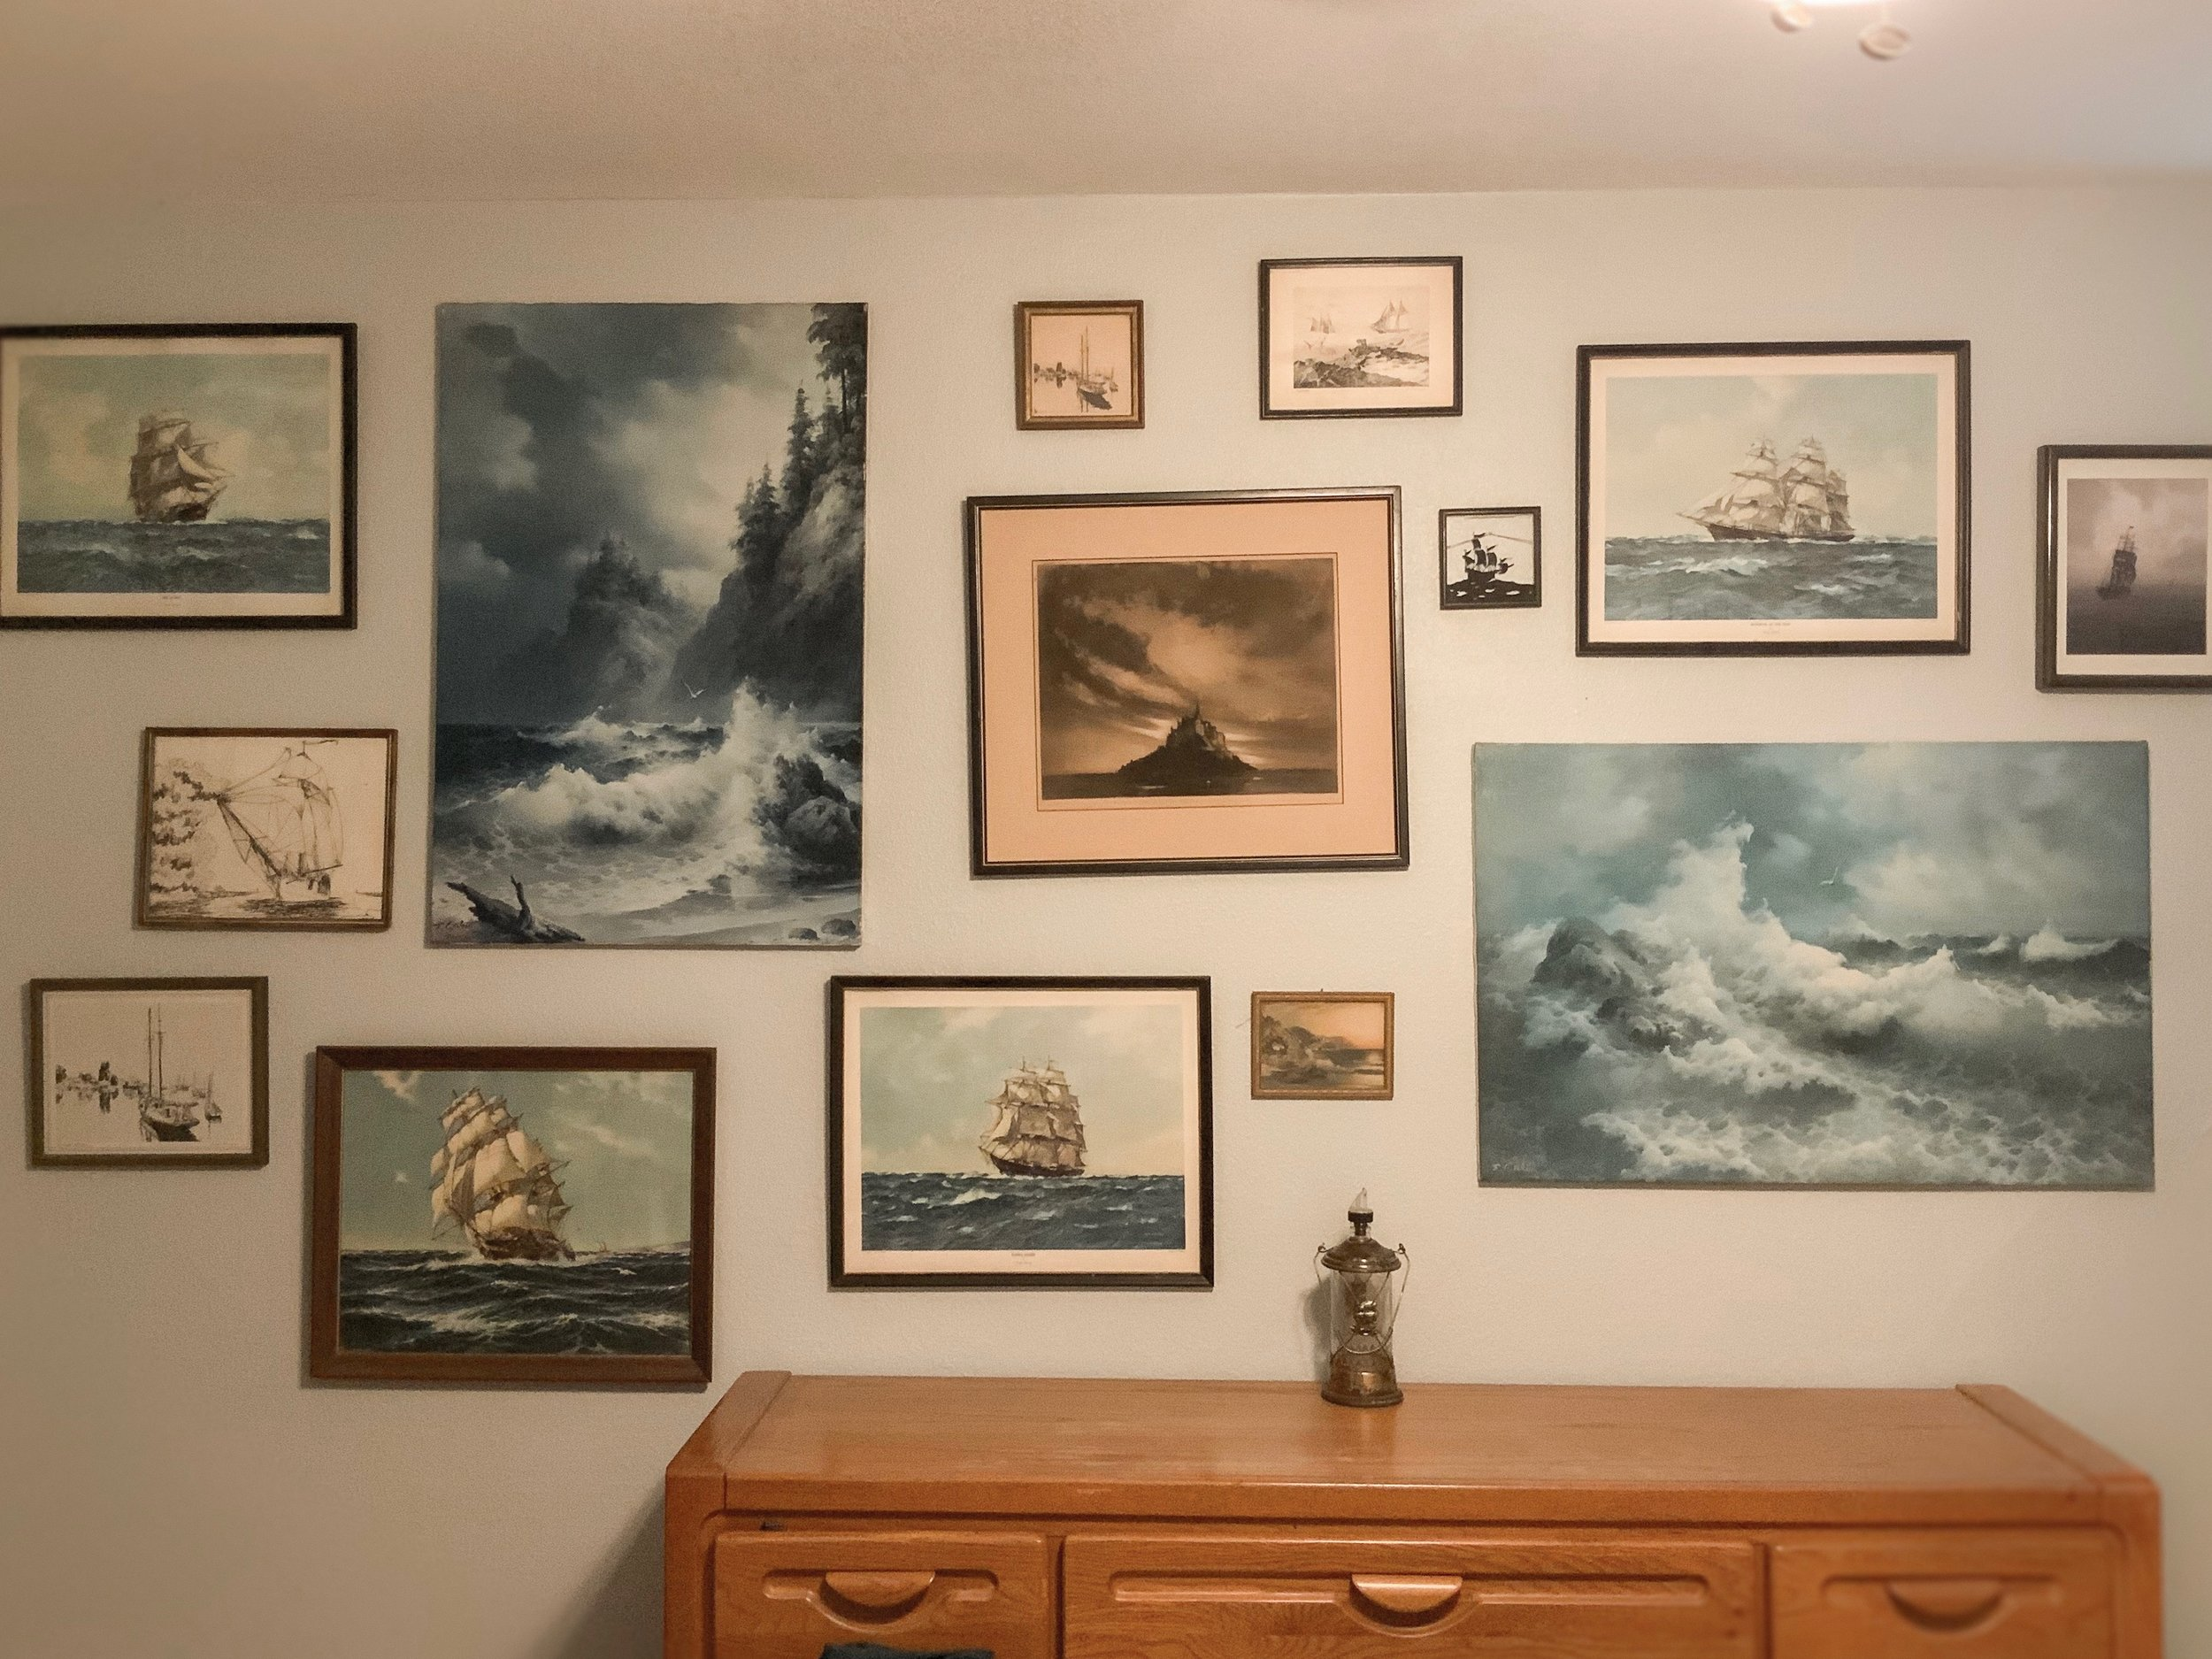 The famous ship wall! So that middle darker piece was the one I started with, then the two big one on either side of that. And I like the different amounts of space between each piece. I feel that it makes the wall more genuine and real.